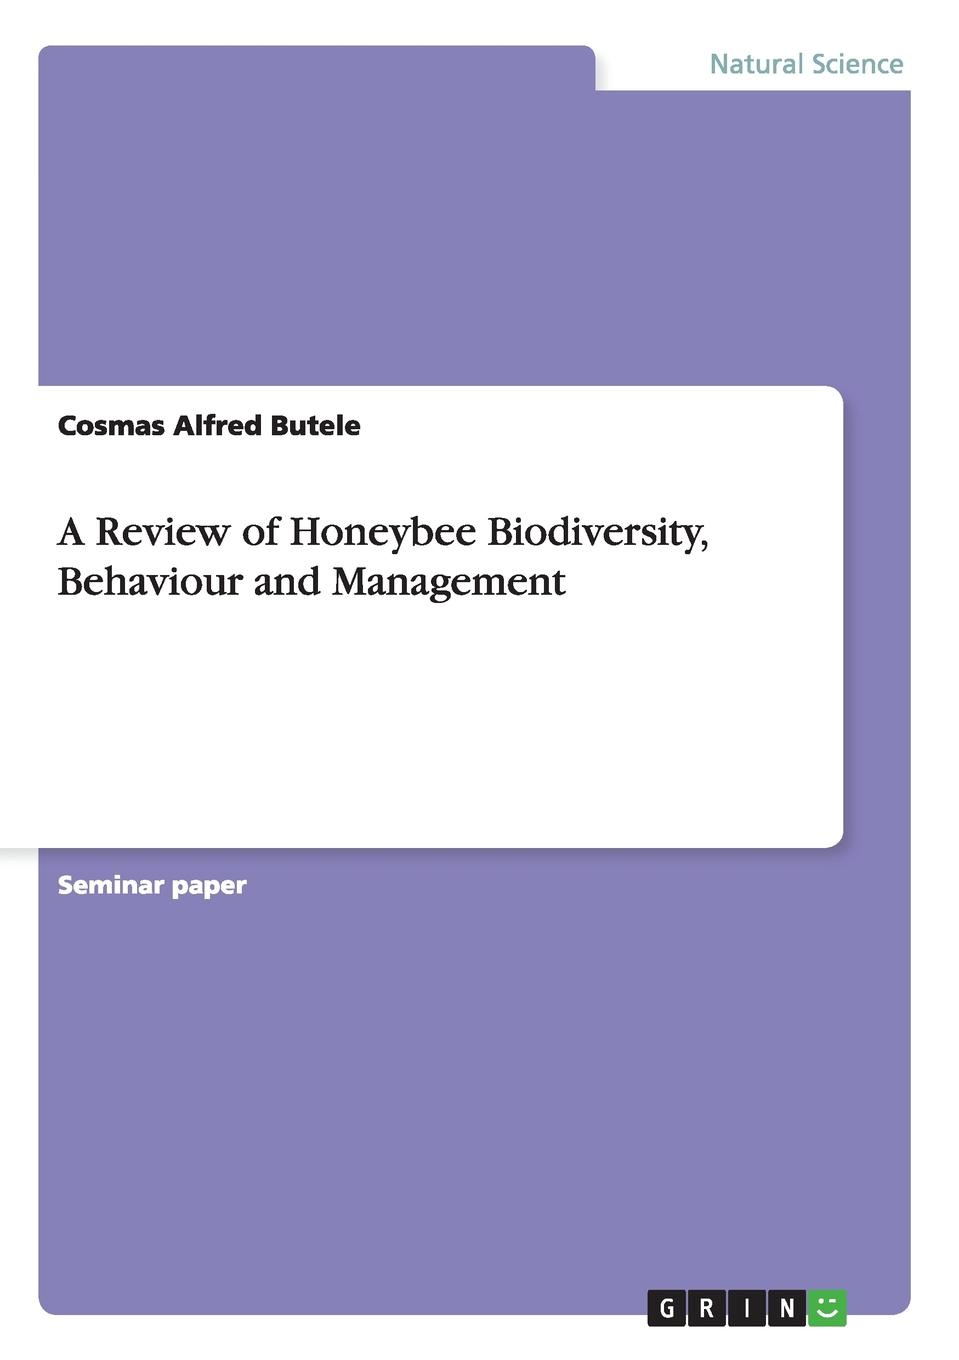 Cosmas Alfred Butele A Review of Honeybee Biodiversity, Behaviour and Management george s fichter bees wasps and ants